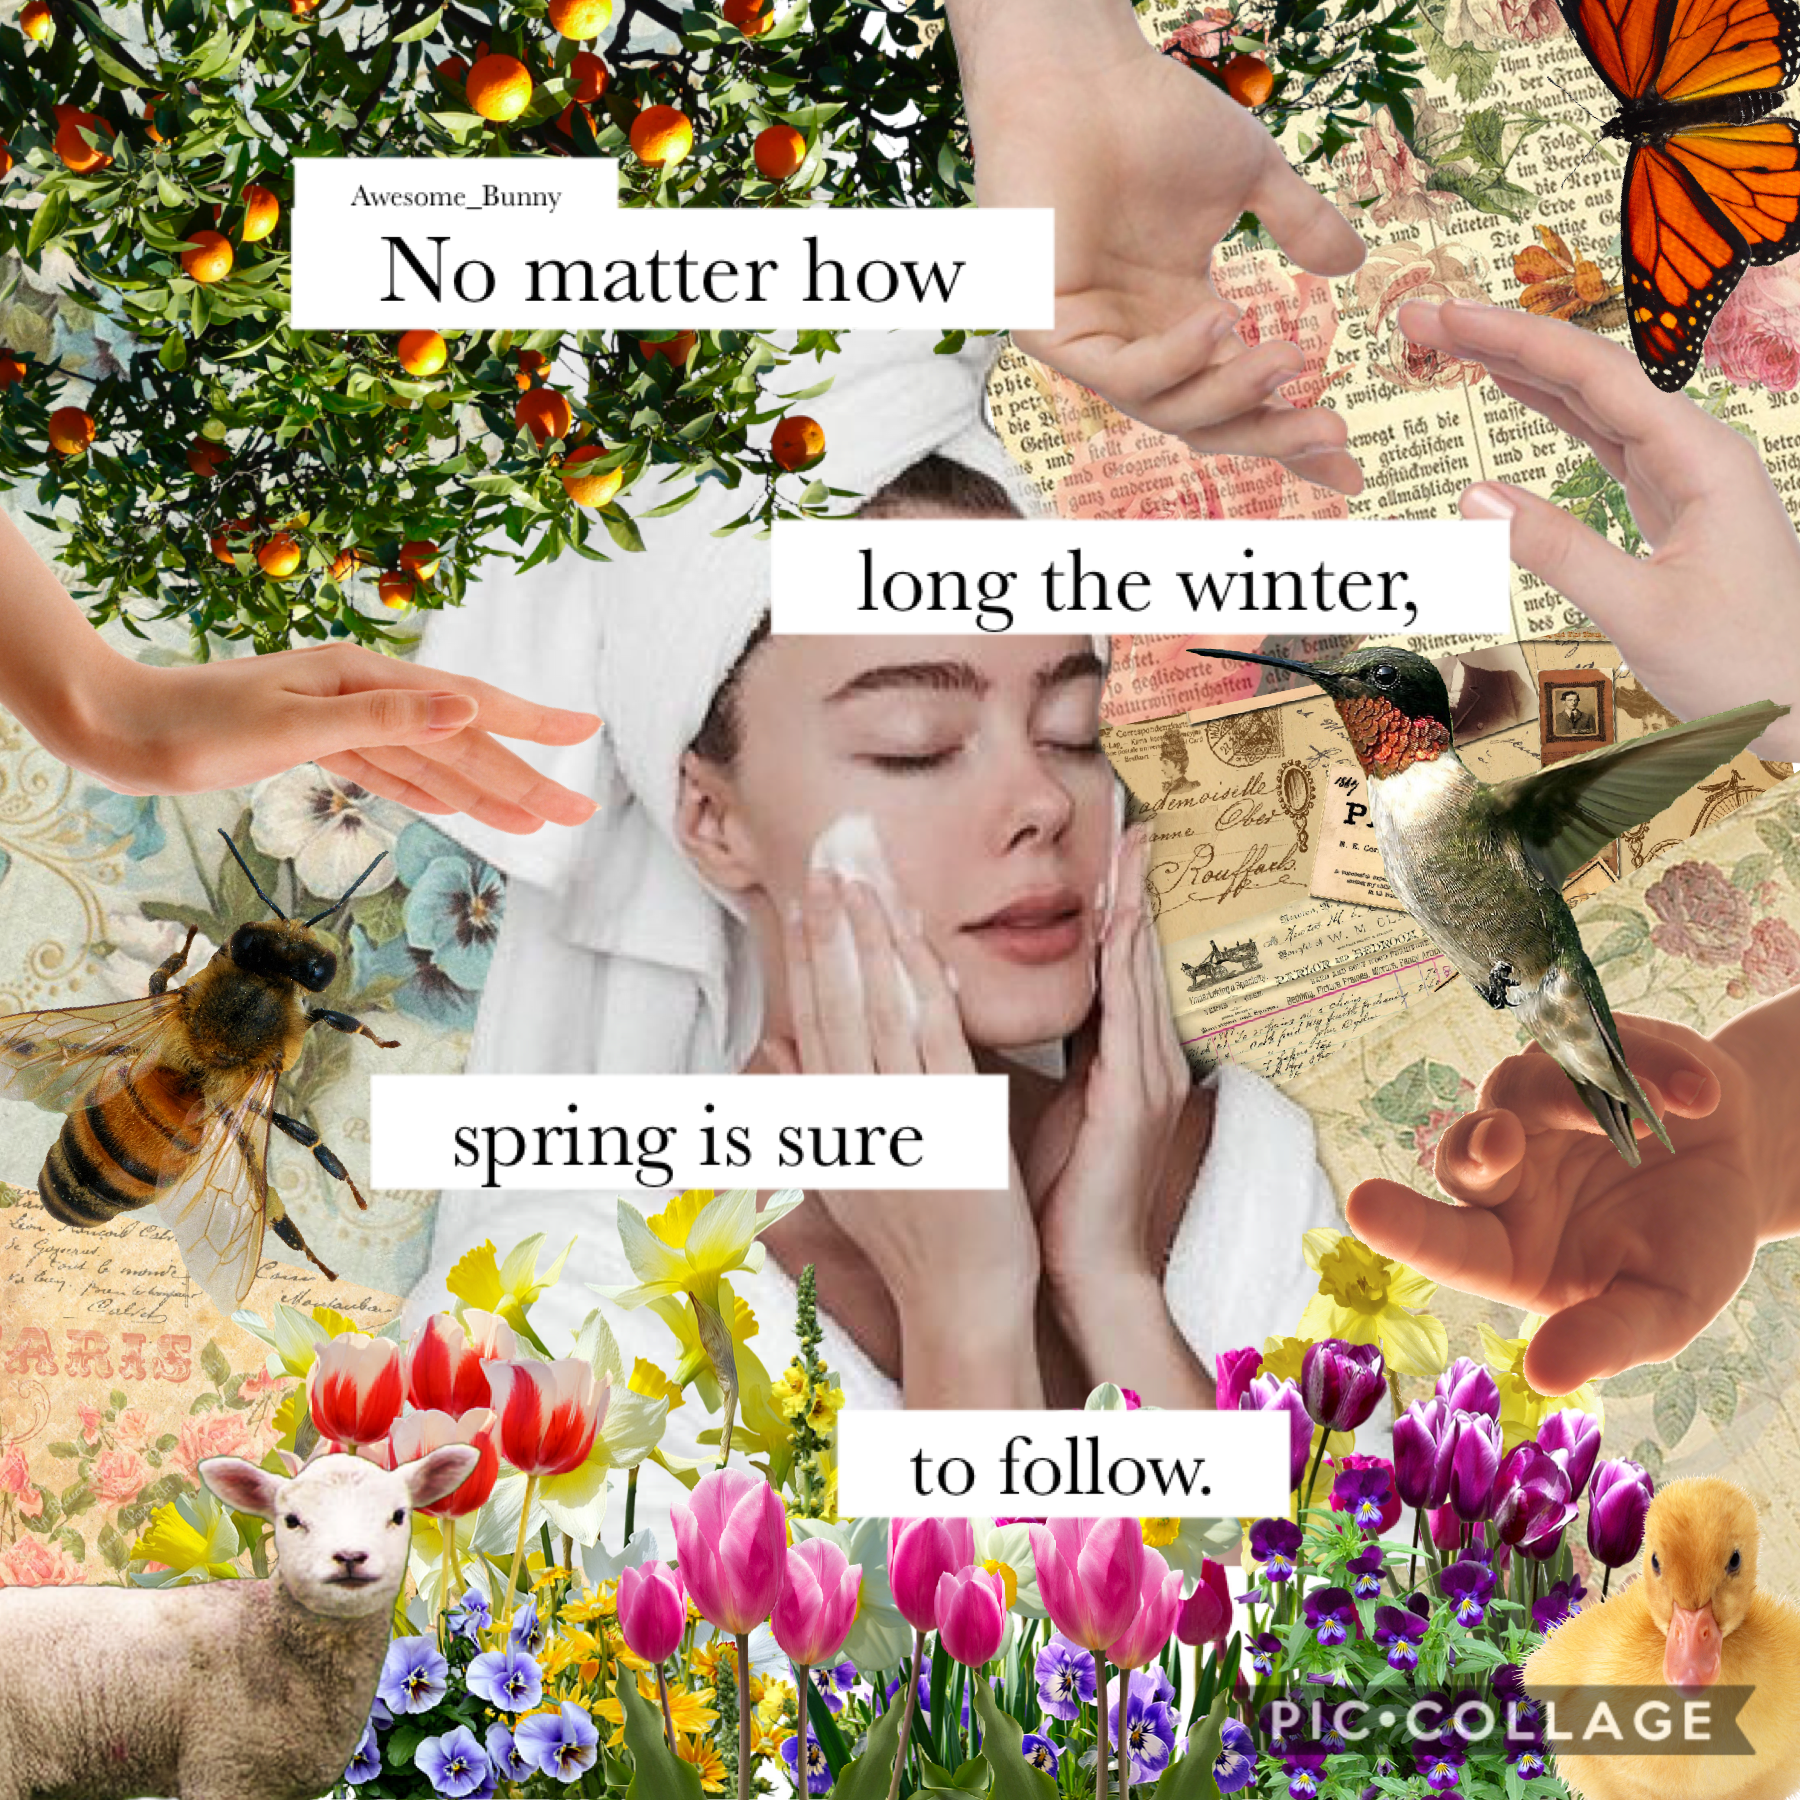 3/19/20 | Happy spring to my northern hemisphere peeps! It seems I have quite some time being trapped at home. Text inspired by @GemQuotes!